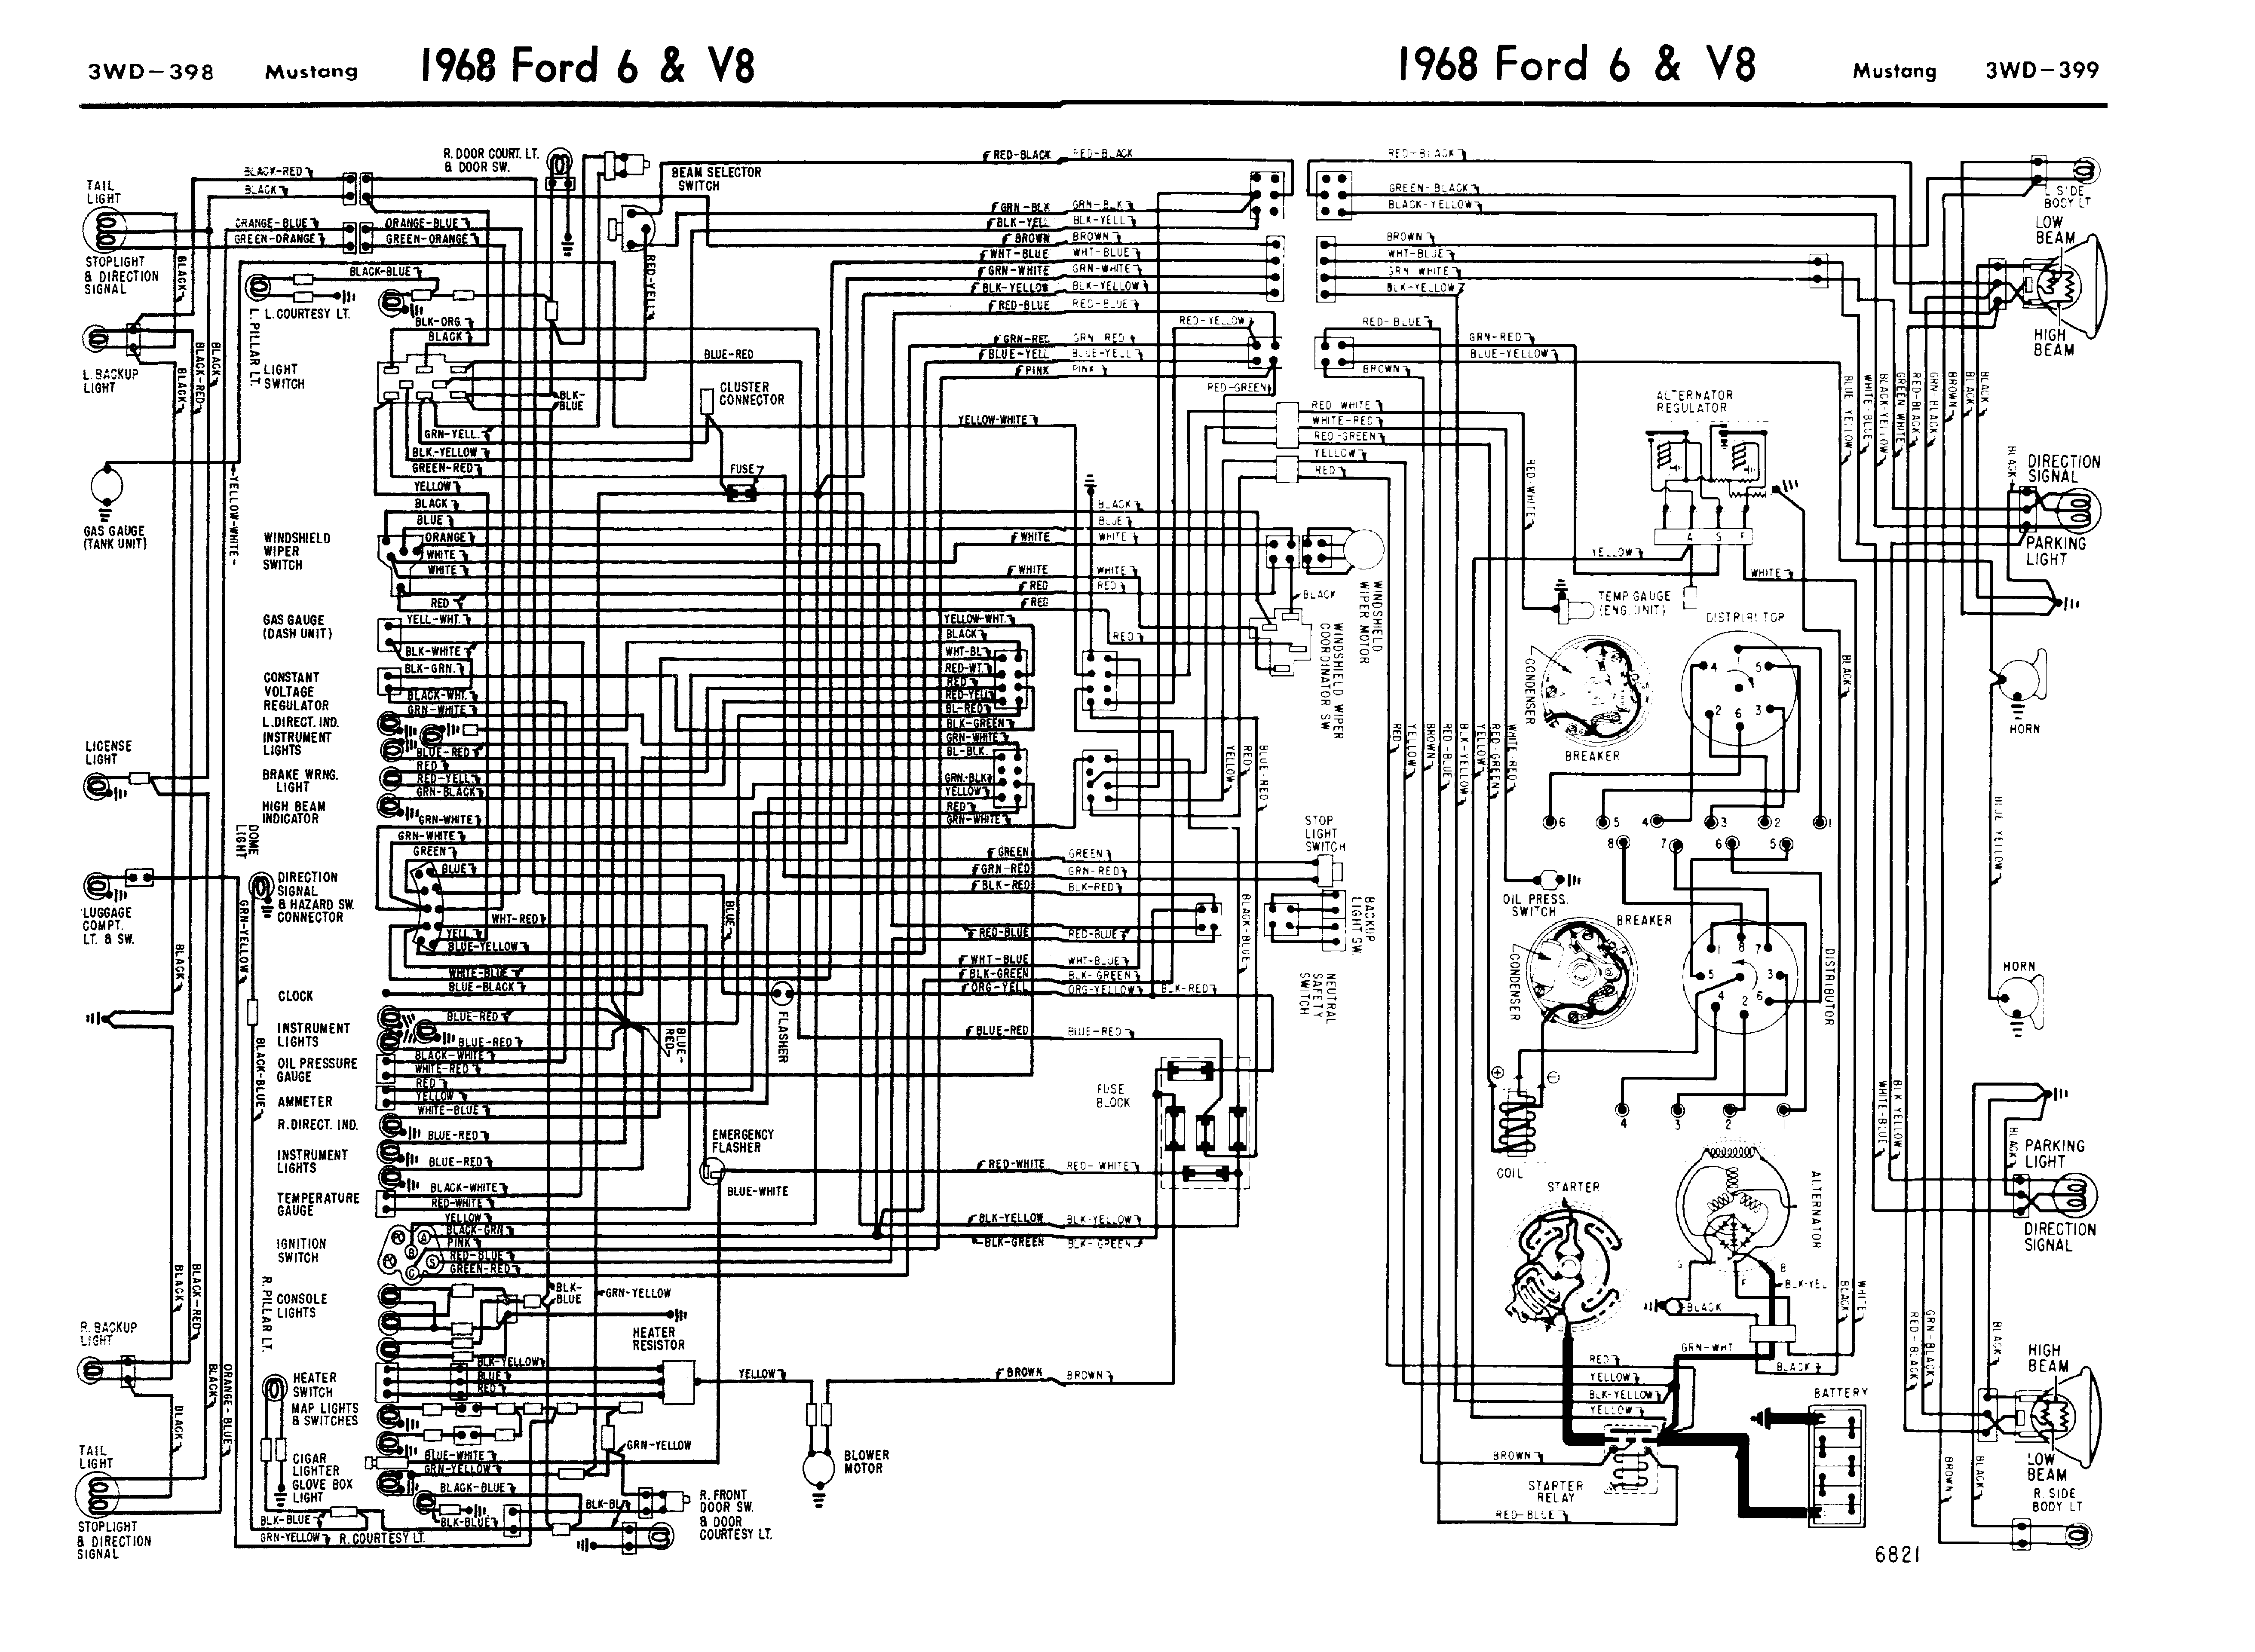 1968 mustang wiring diagrams evolving software 1965 mustang wiring diagram 1968 ford mustang wiring guide